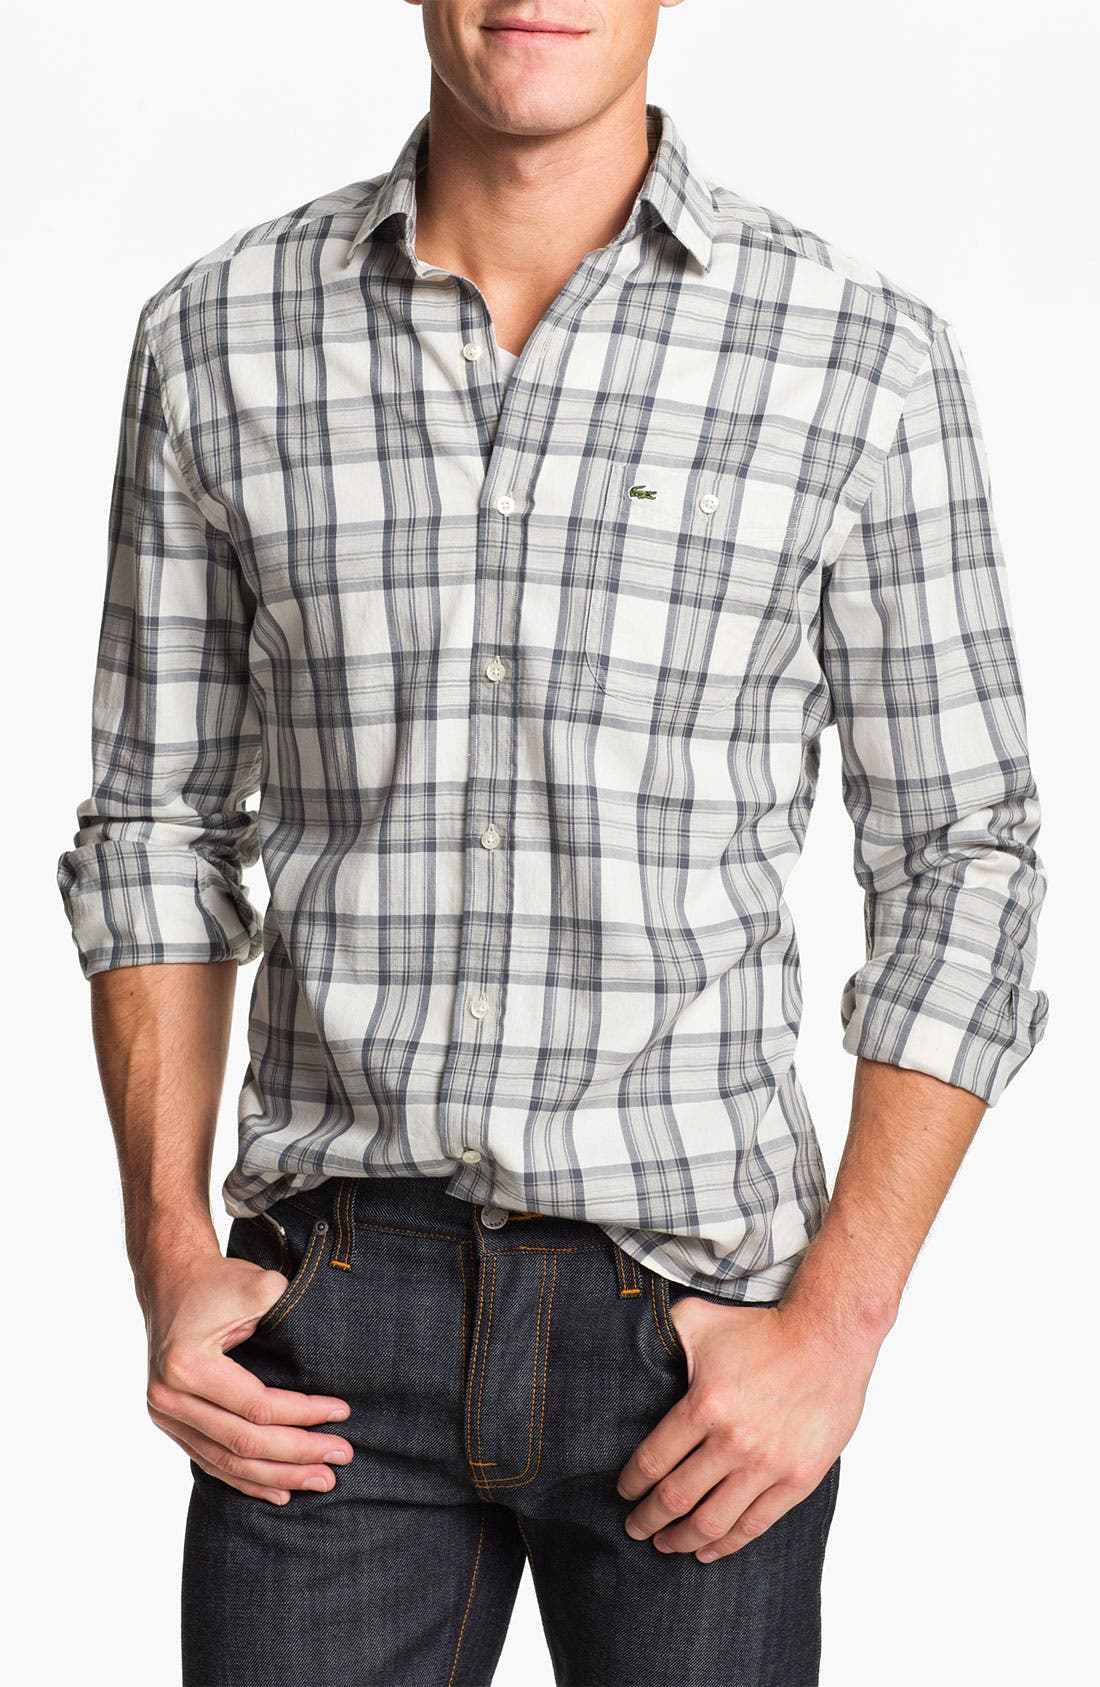 Alternate Image 1 Selected - Lacoste Slim Fit Plaid Woven Shirt